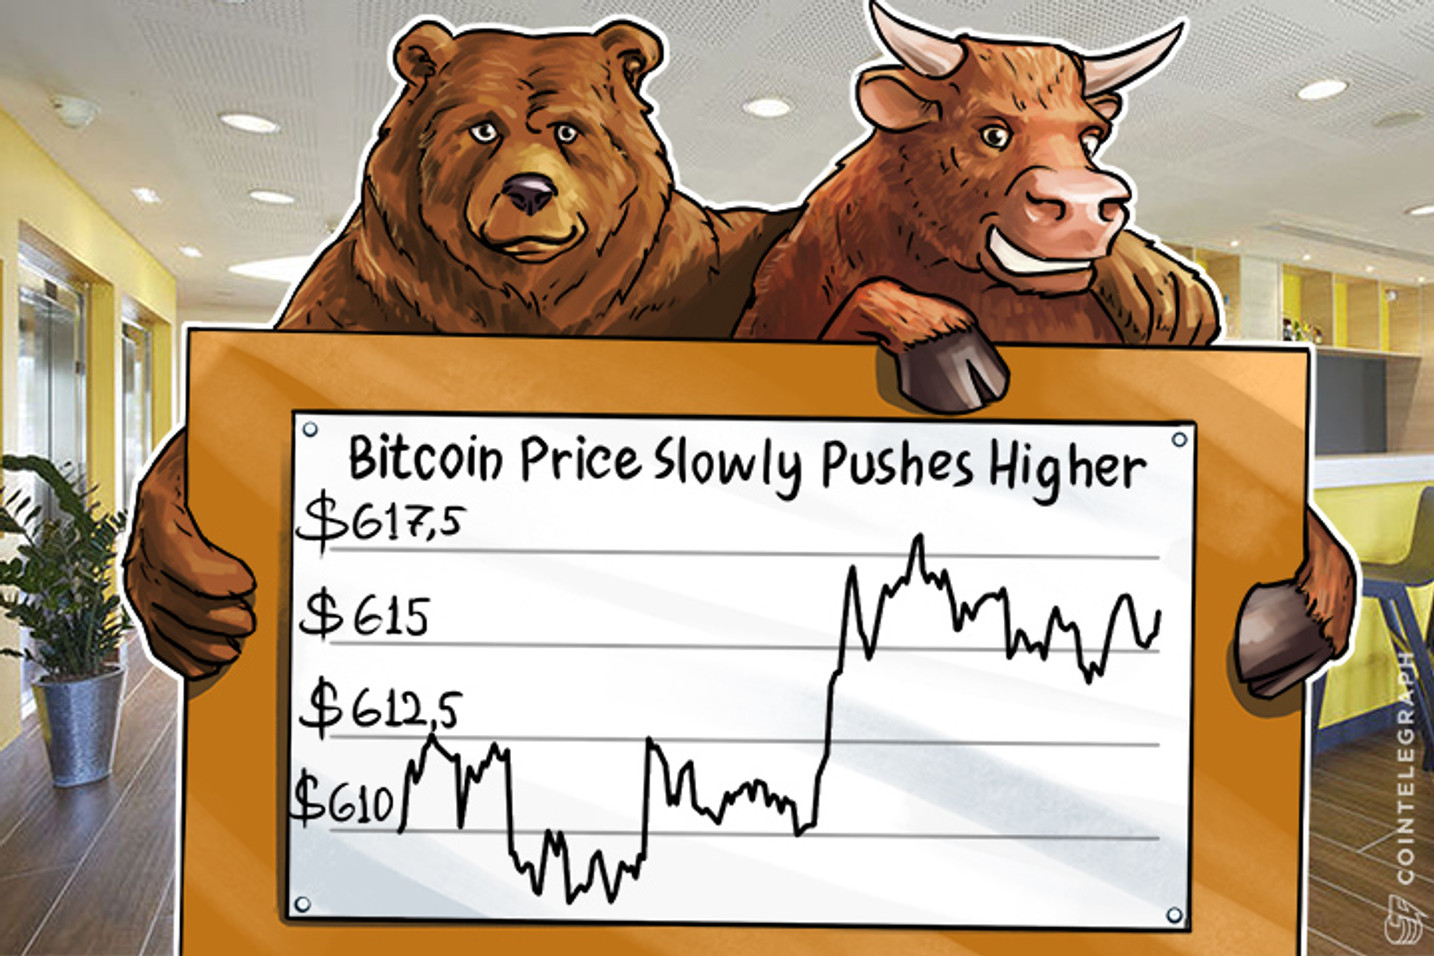 Bitcoin Price Slowly Pushes Higher as the Scaling Bitcoin Conference Wraps Up